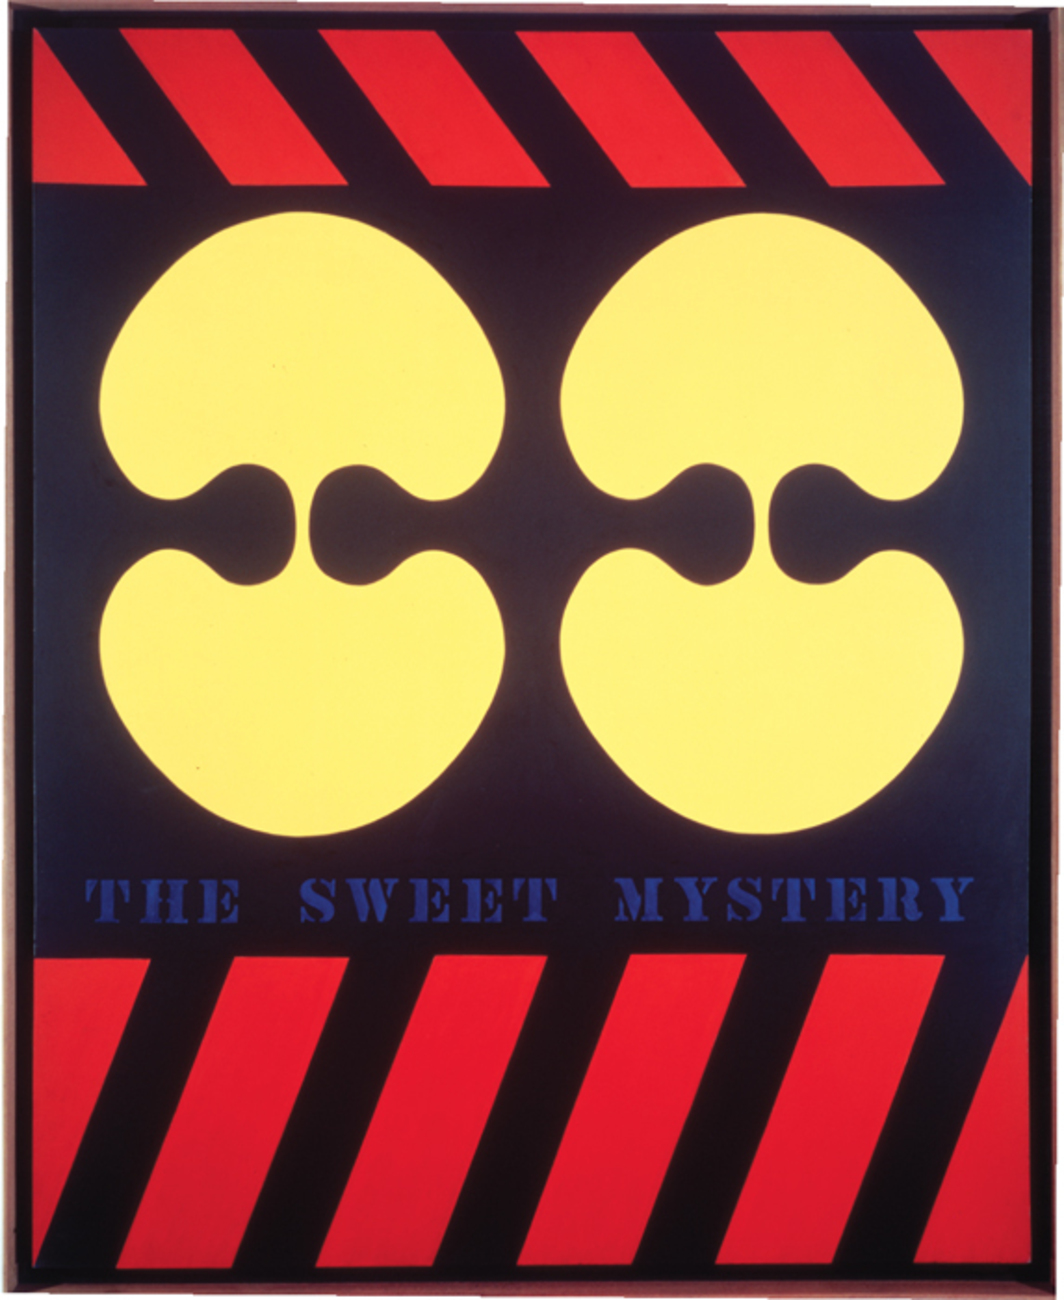 "Robert Indiana, The Sweet Mystery, 1960–62, oil on canvas, 72 x 60""."